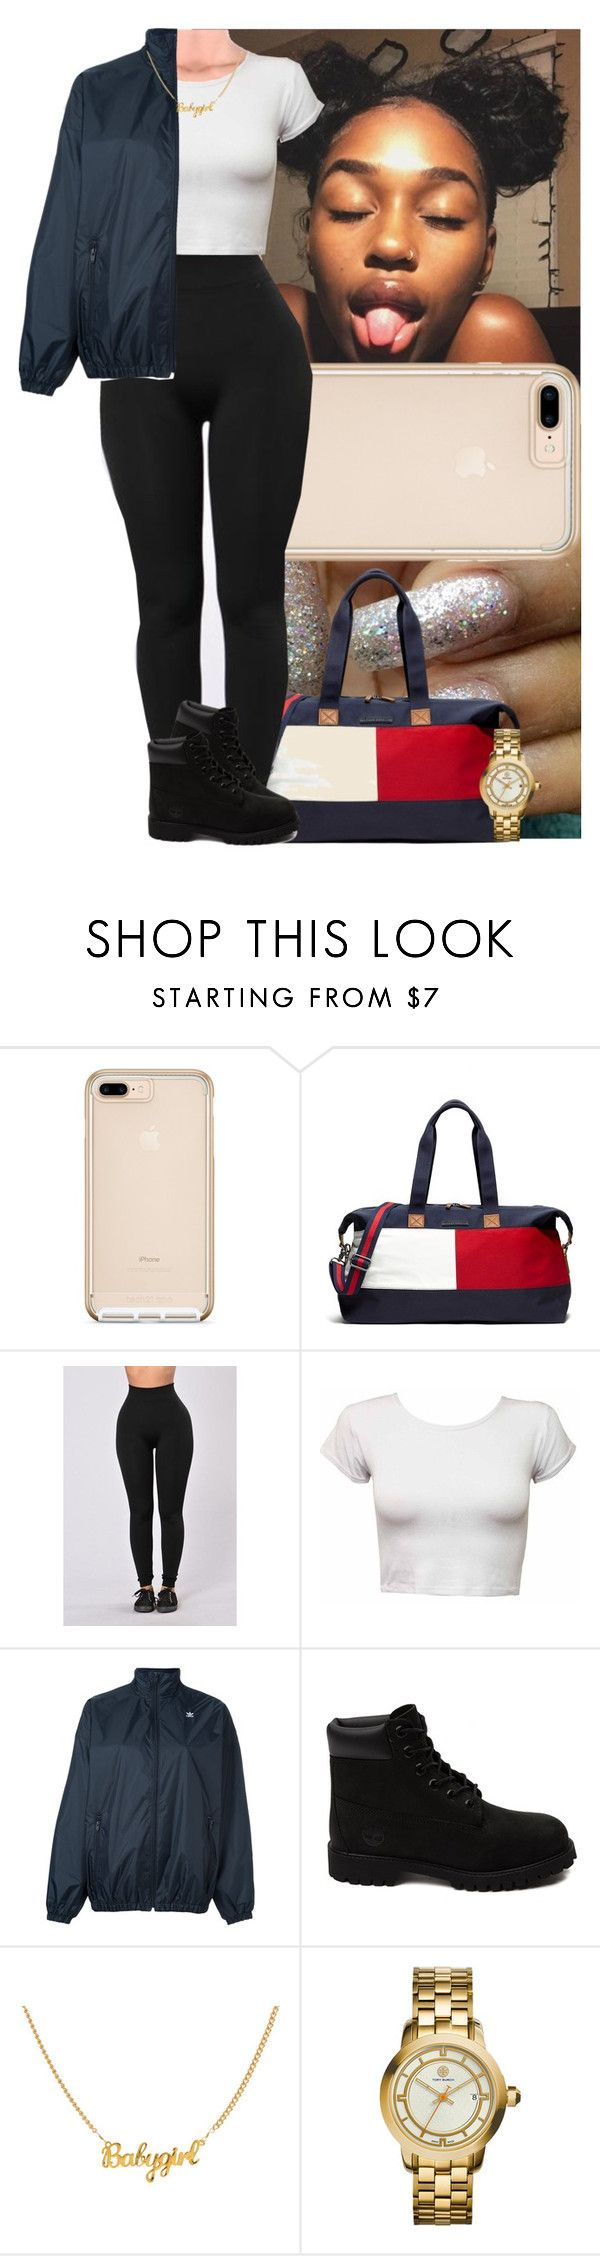 """""""Untitled #661"""" by msixo ❤ liked on Polyvore featuring Tommy Hilfiger, adidas Originals, Timberland and Tory Burch"""